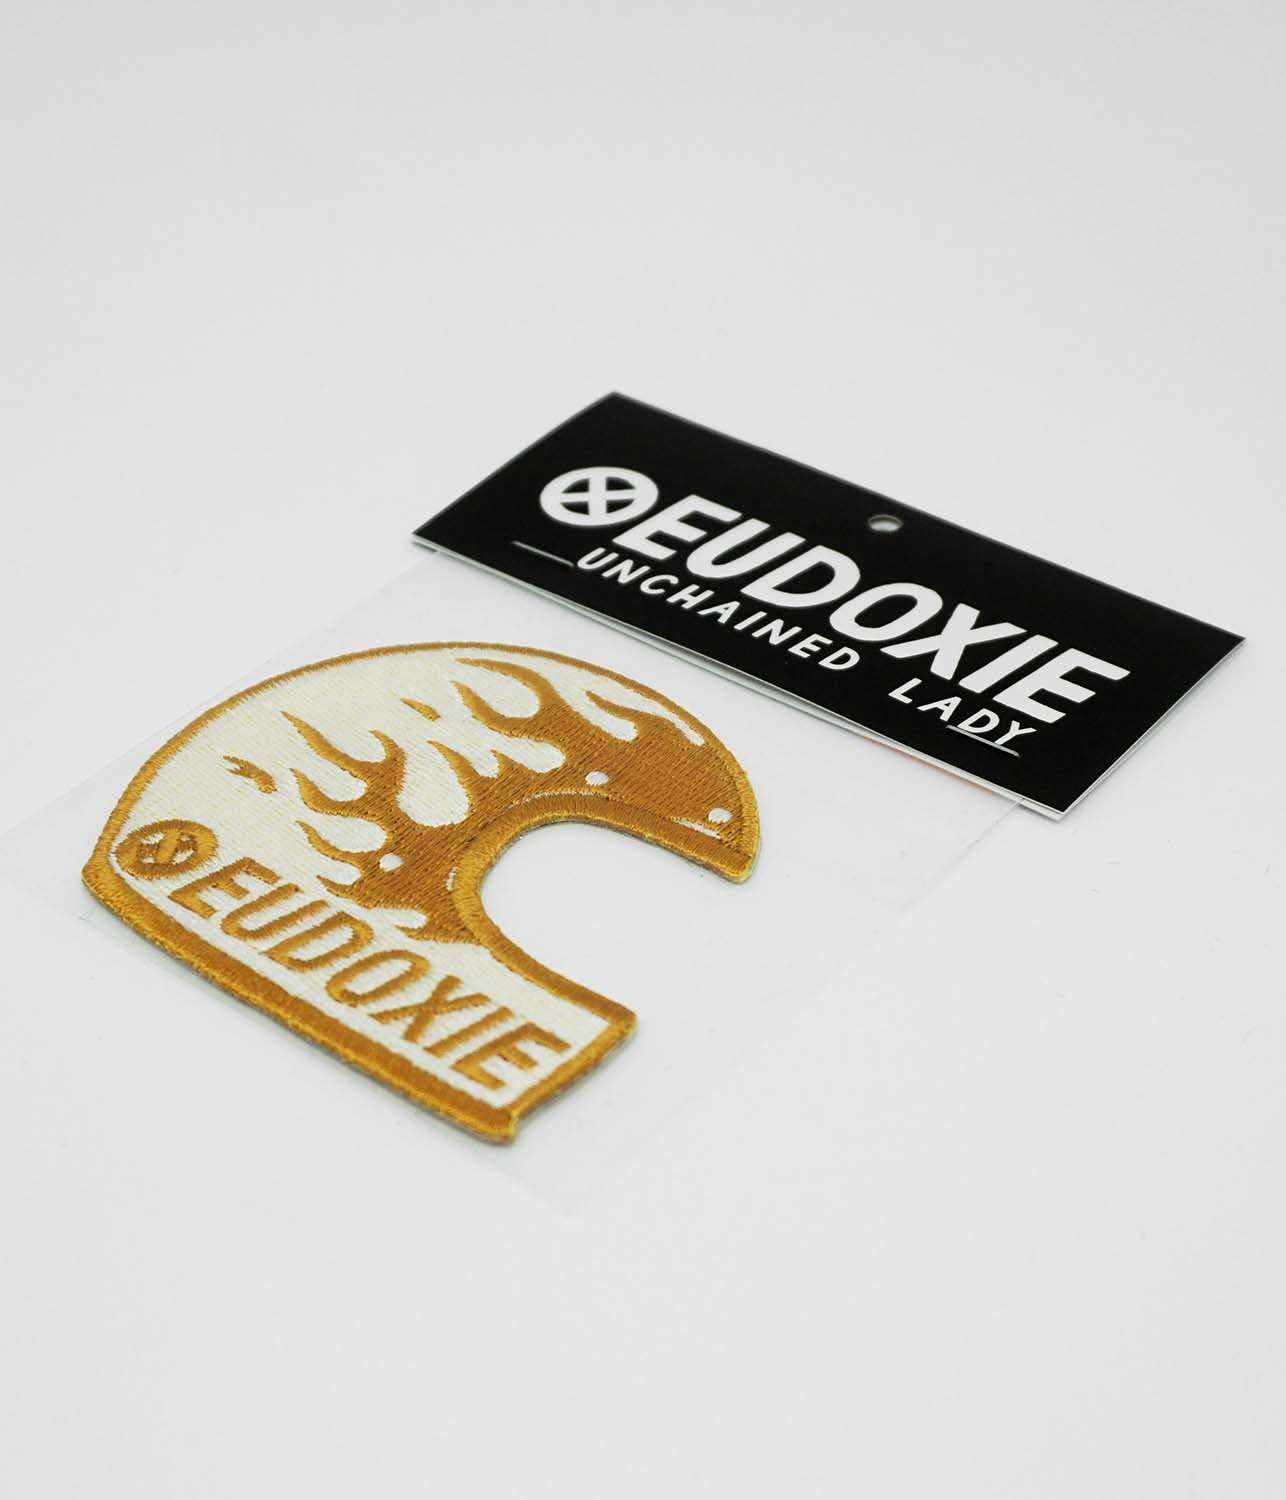 Eudoxie - Eudoxie Flame Patches - Accessories - Salt Flats Clothing